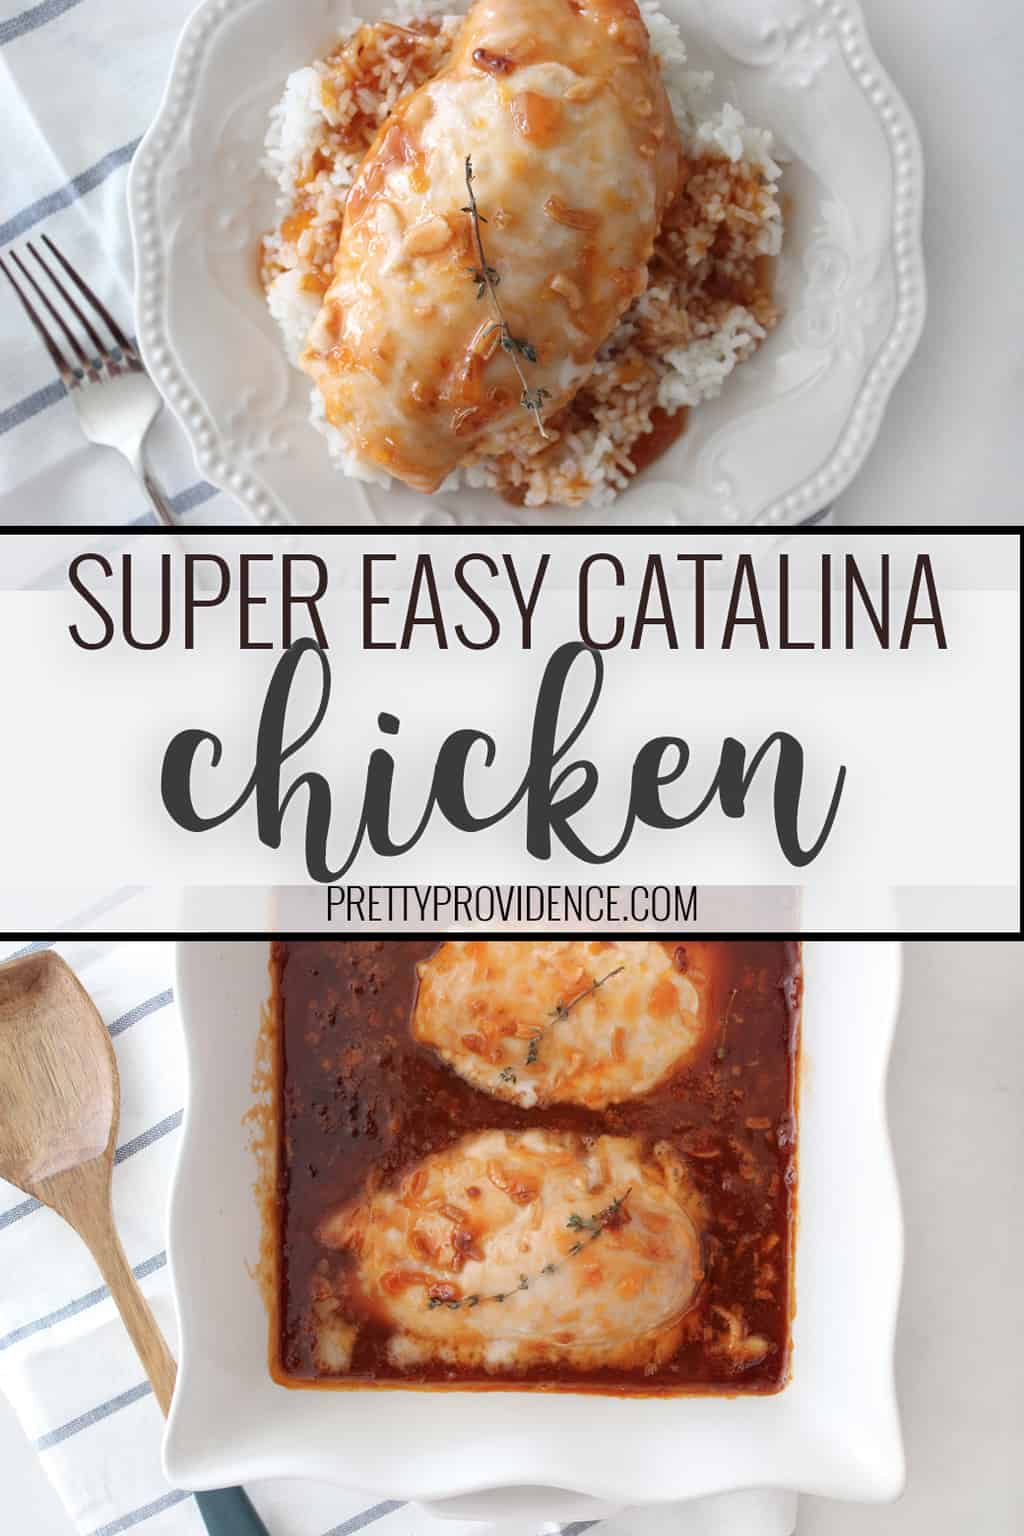 You will love this Catalina Chicken recipe! It is quick, easy, and such a delicious way to make chicken!